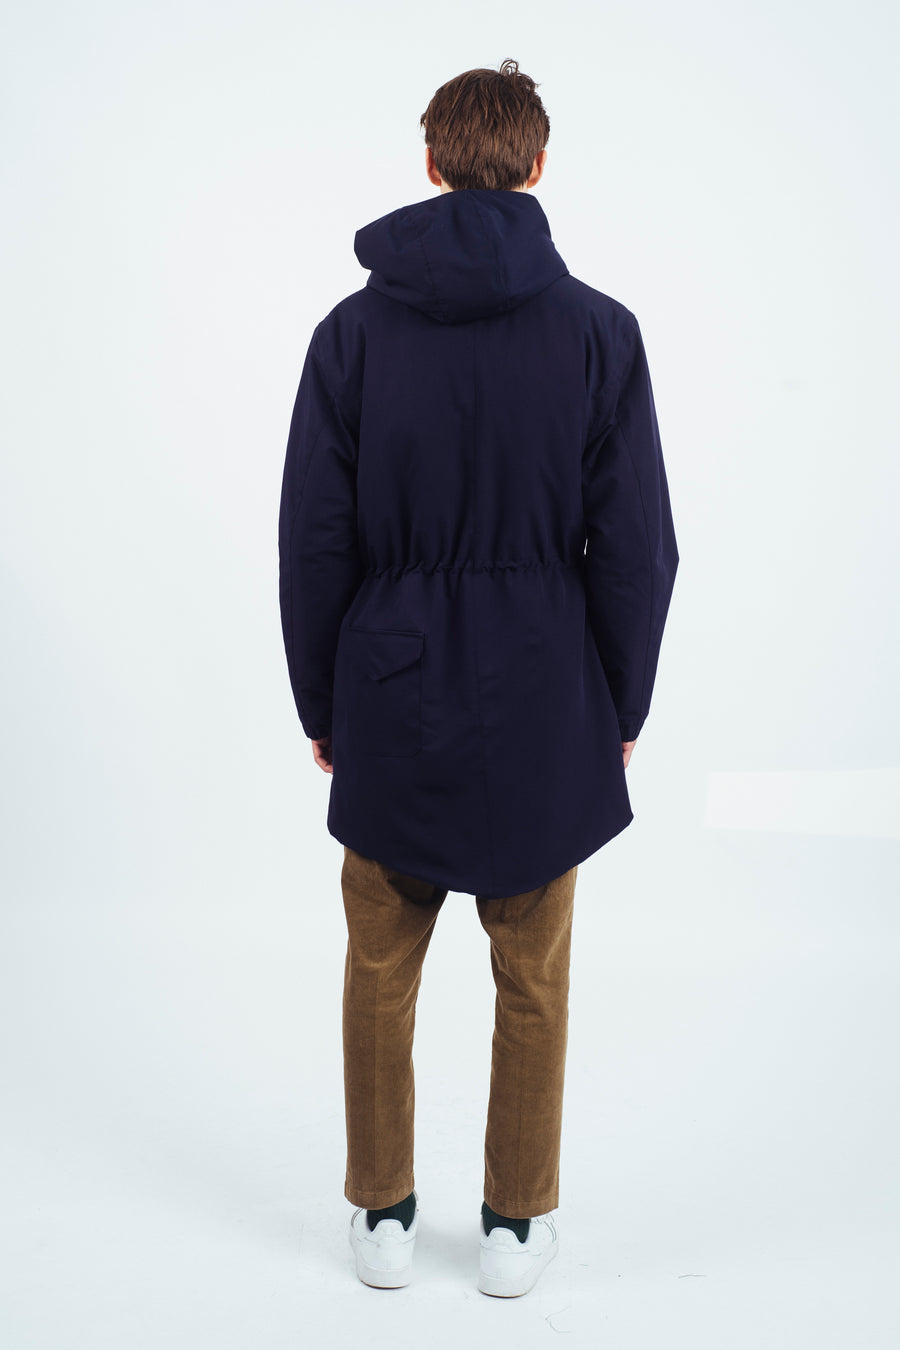 Lizzard Blizzard Parka Berlingo Navy - Welter Shelter - Waterproof, Windproof, breathable Packable